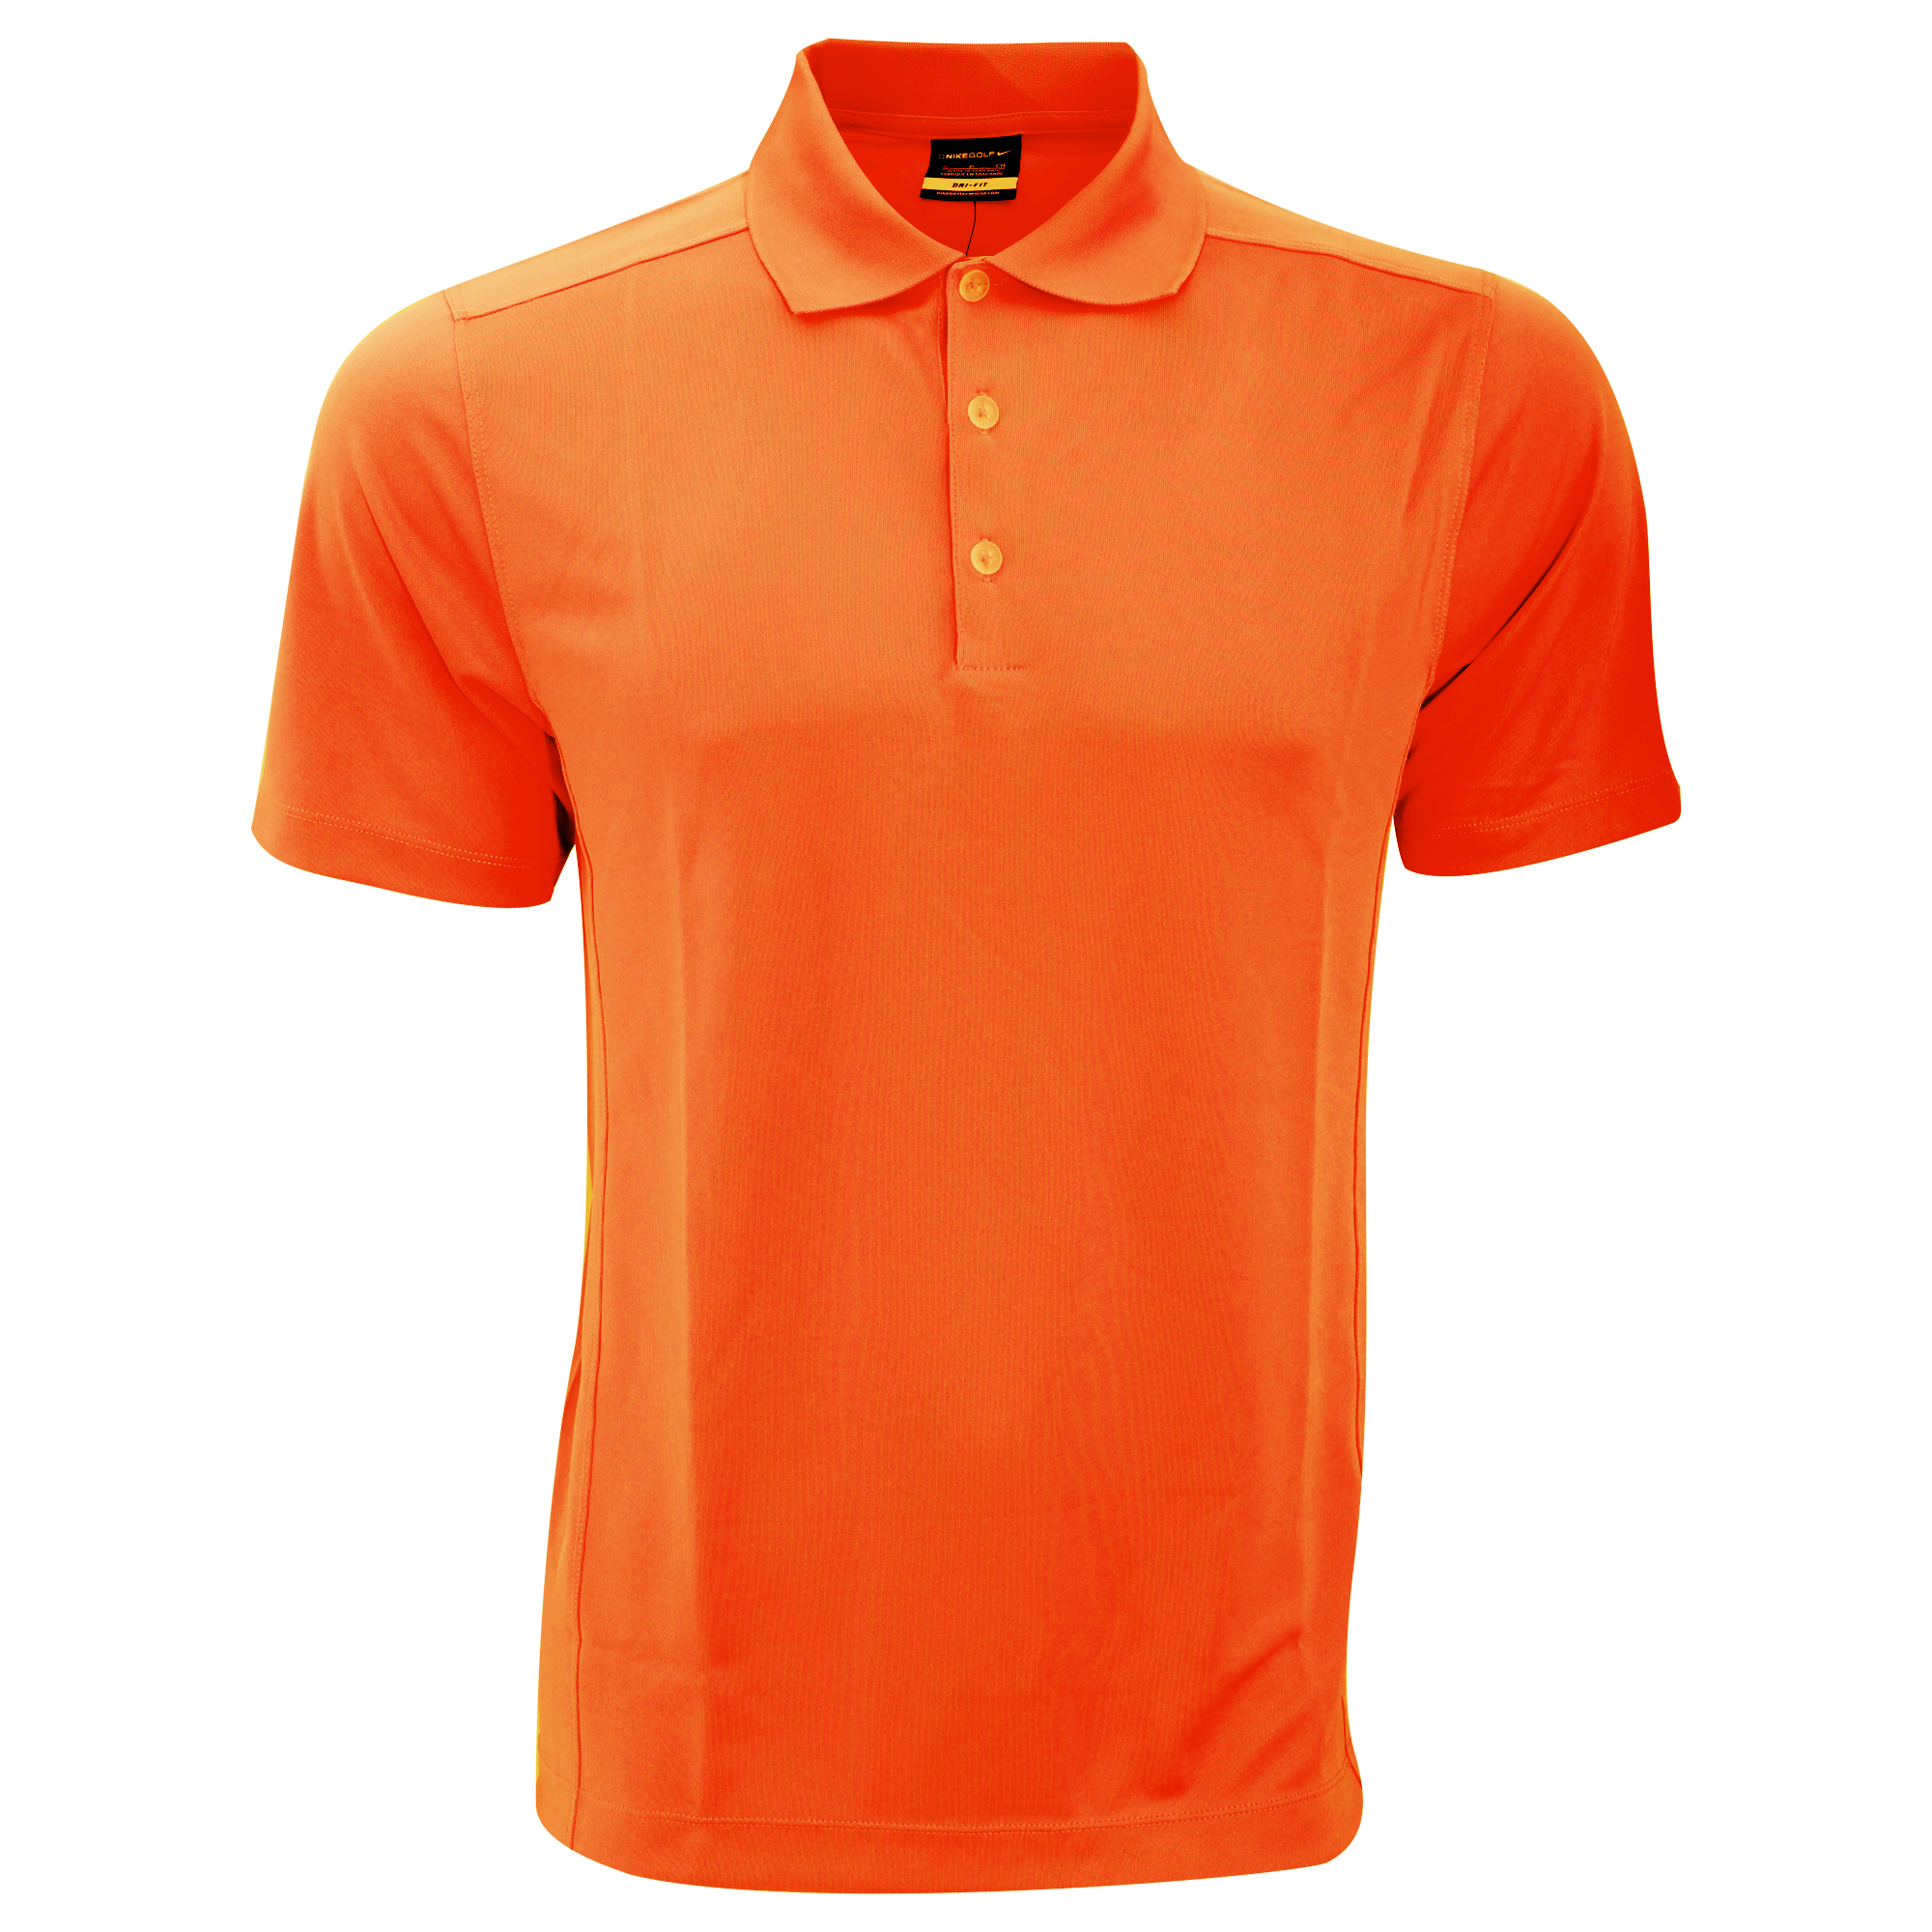 Nike mens dry fit sports golf polo shirt 6 colours s m l for Big tall nike golf shirts